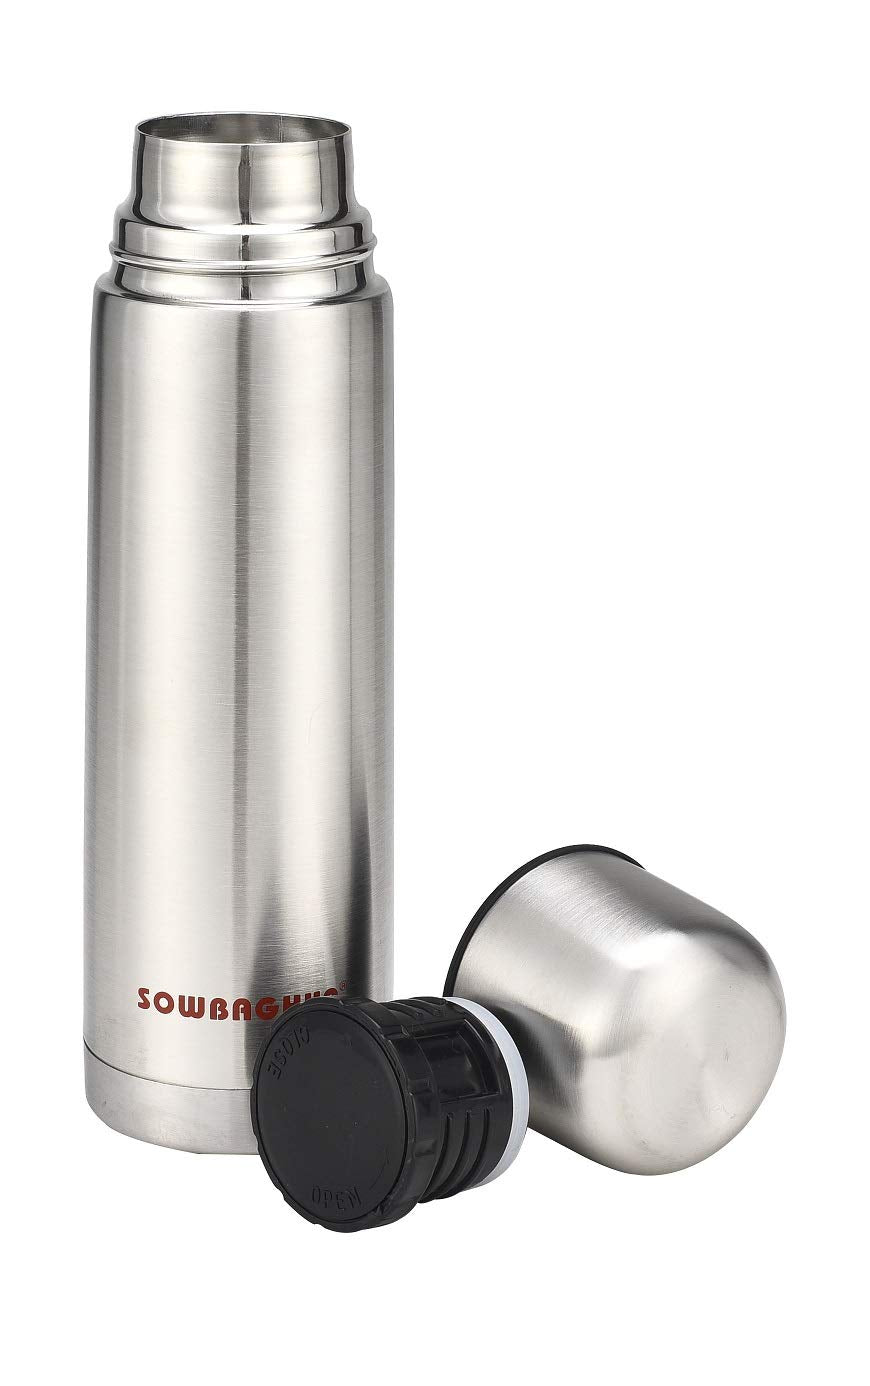 Sowbaghya SSF02 500ml Pure Stainless steel Flask get best offers deals free and coupons online at buythevalue.in